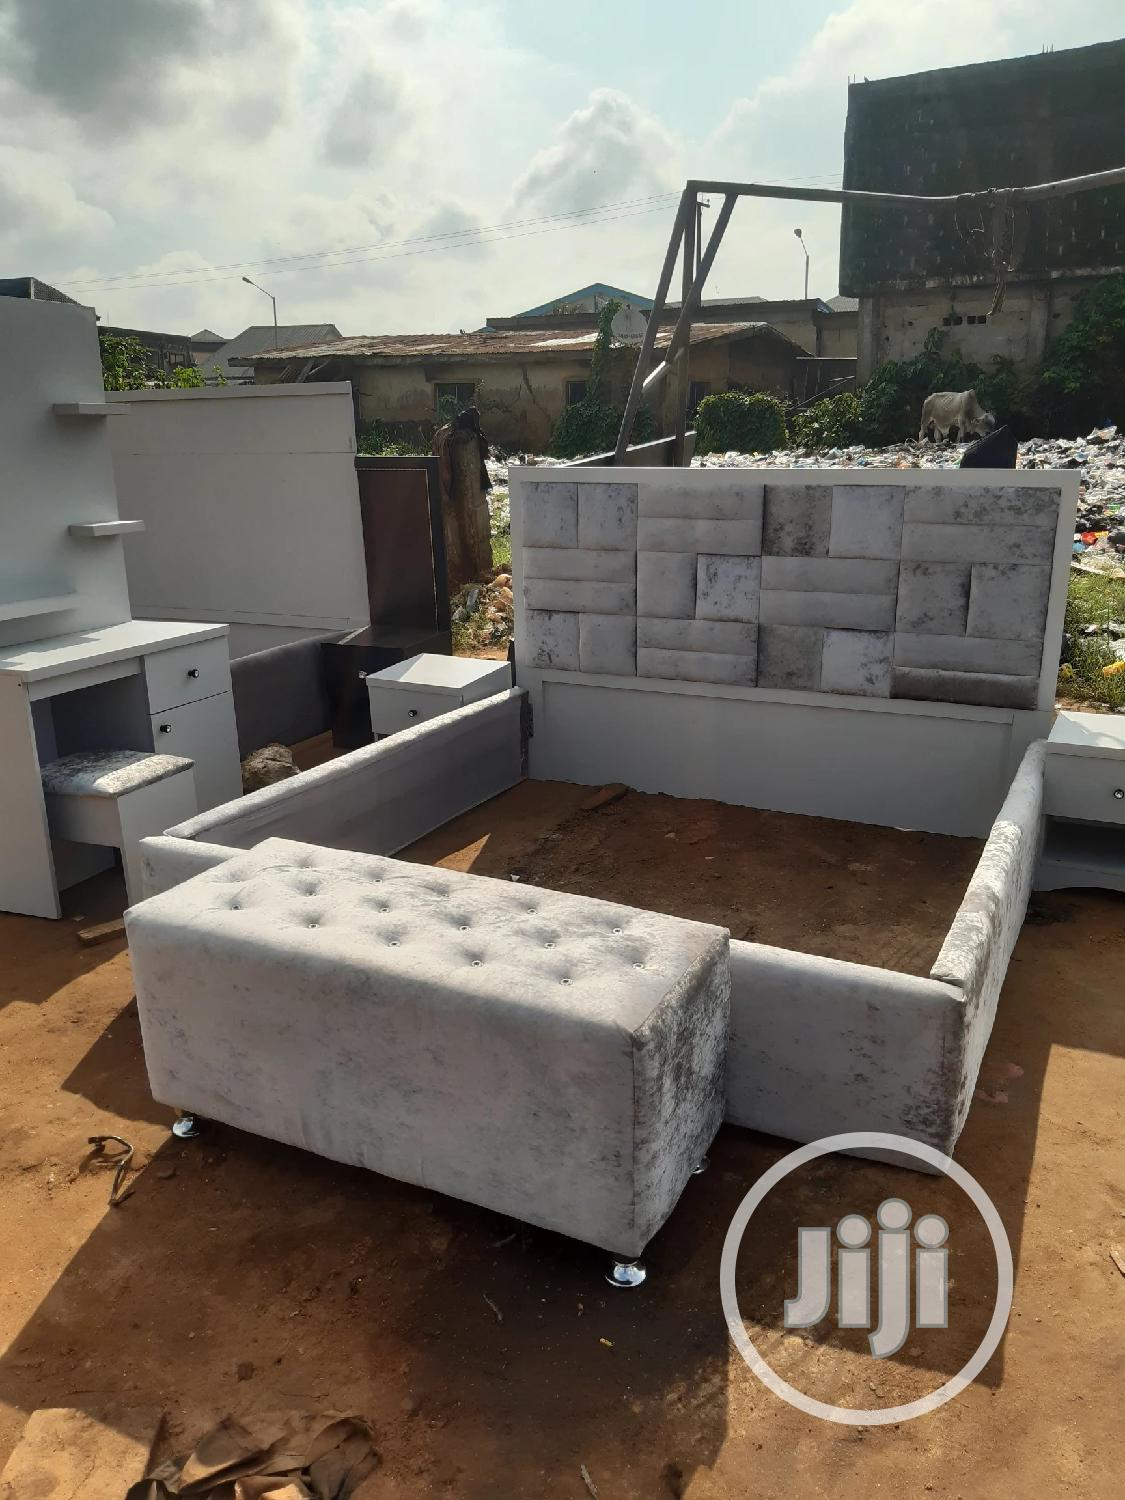 6x6 Bed Set | Furniture for sale in Ojo, Lagos State, Nigeria